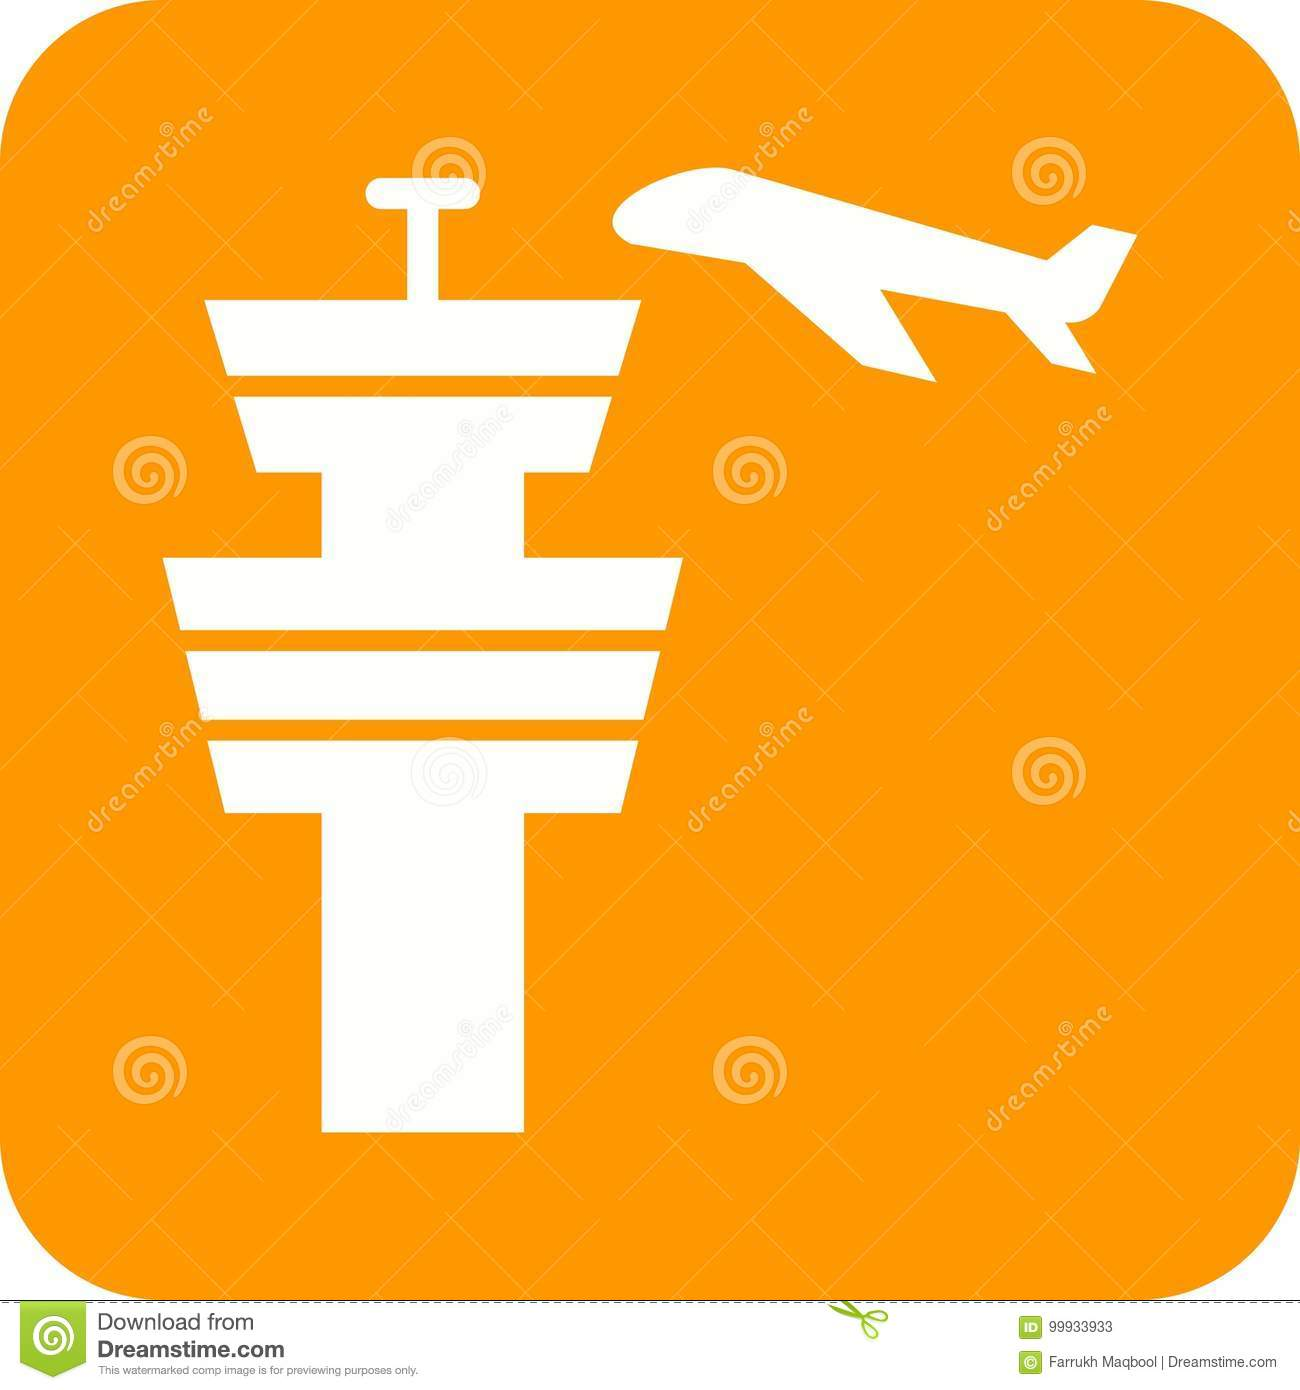 Air Control Tower stock vector  Illustration of communication - 99933933